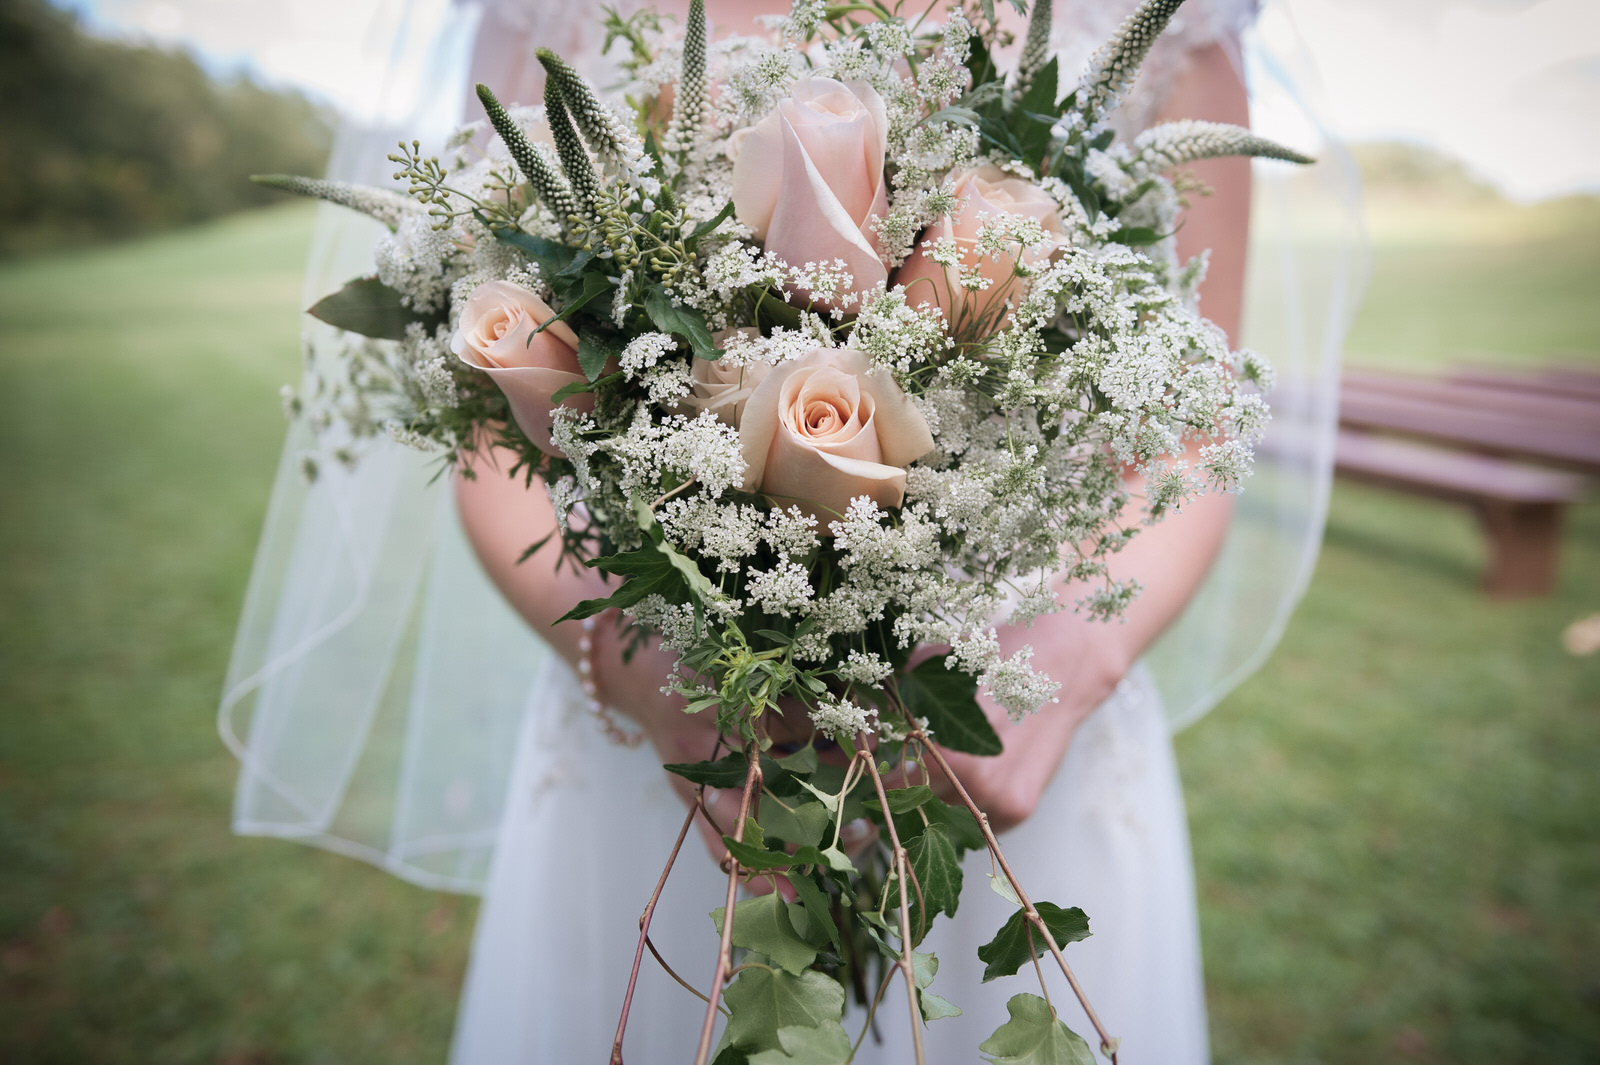 Hocking-hills-athens-lancaster-logan-ohio-wedding-photography-photographer-marriage-heart of the country-outdoors-princess-bride-flowers-pink rose-babies breath